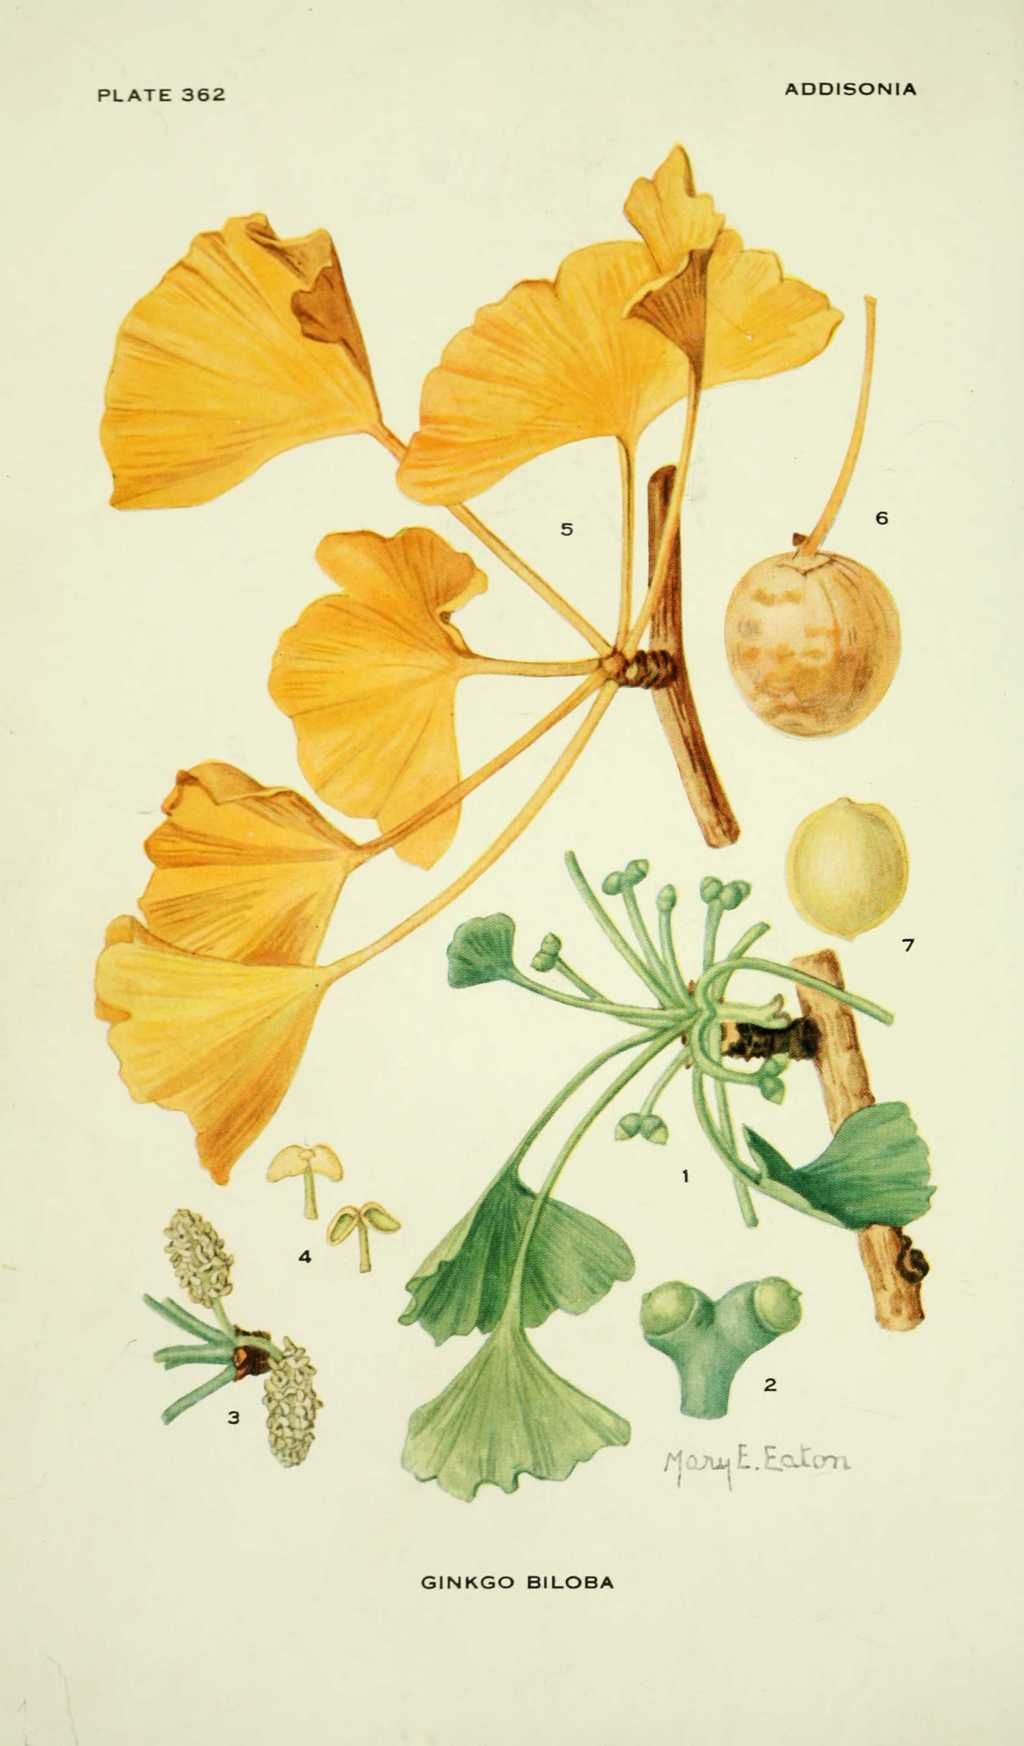 Mary Emily Eaton, Ginkgo biloba (the tree crowns) | For the ...